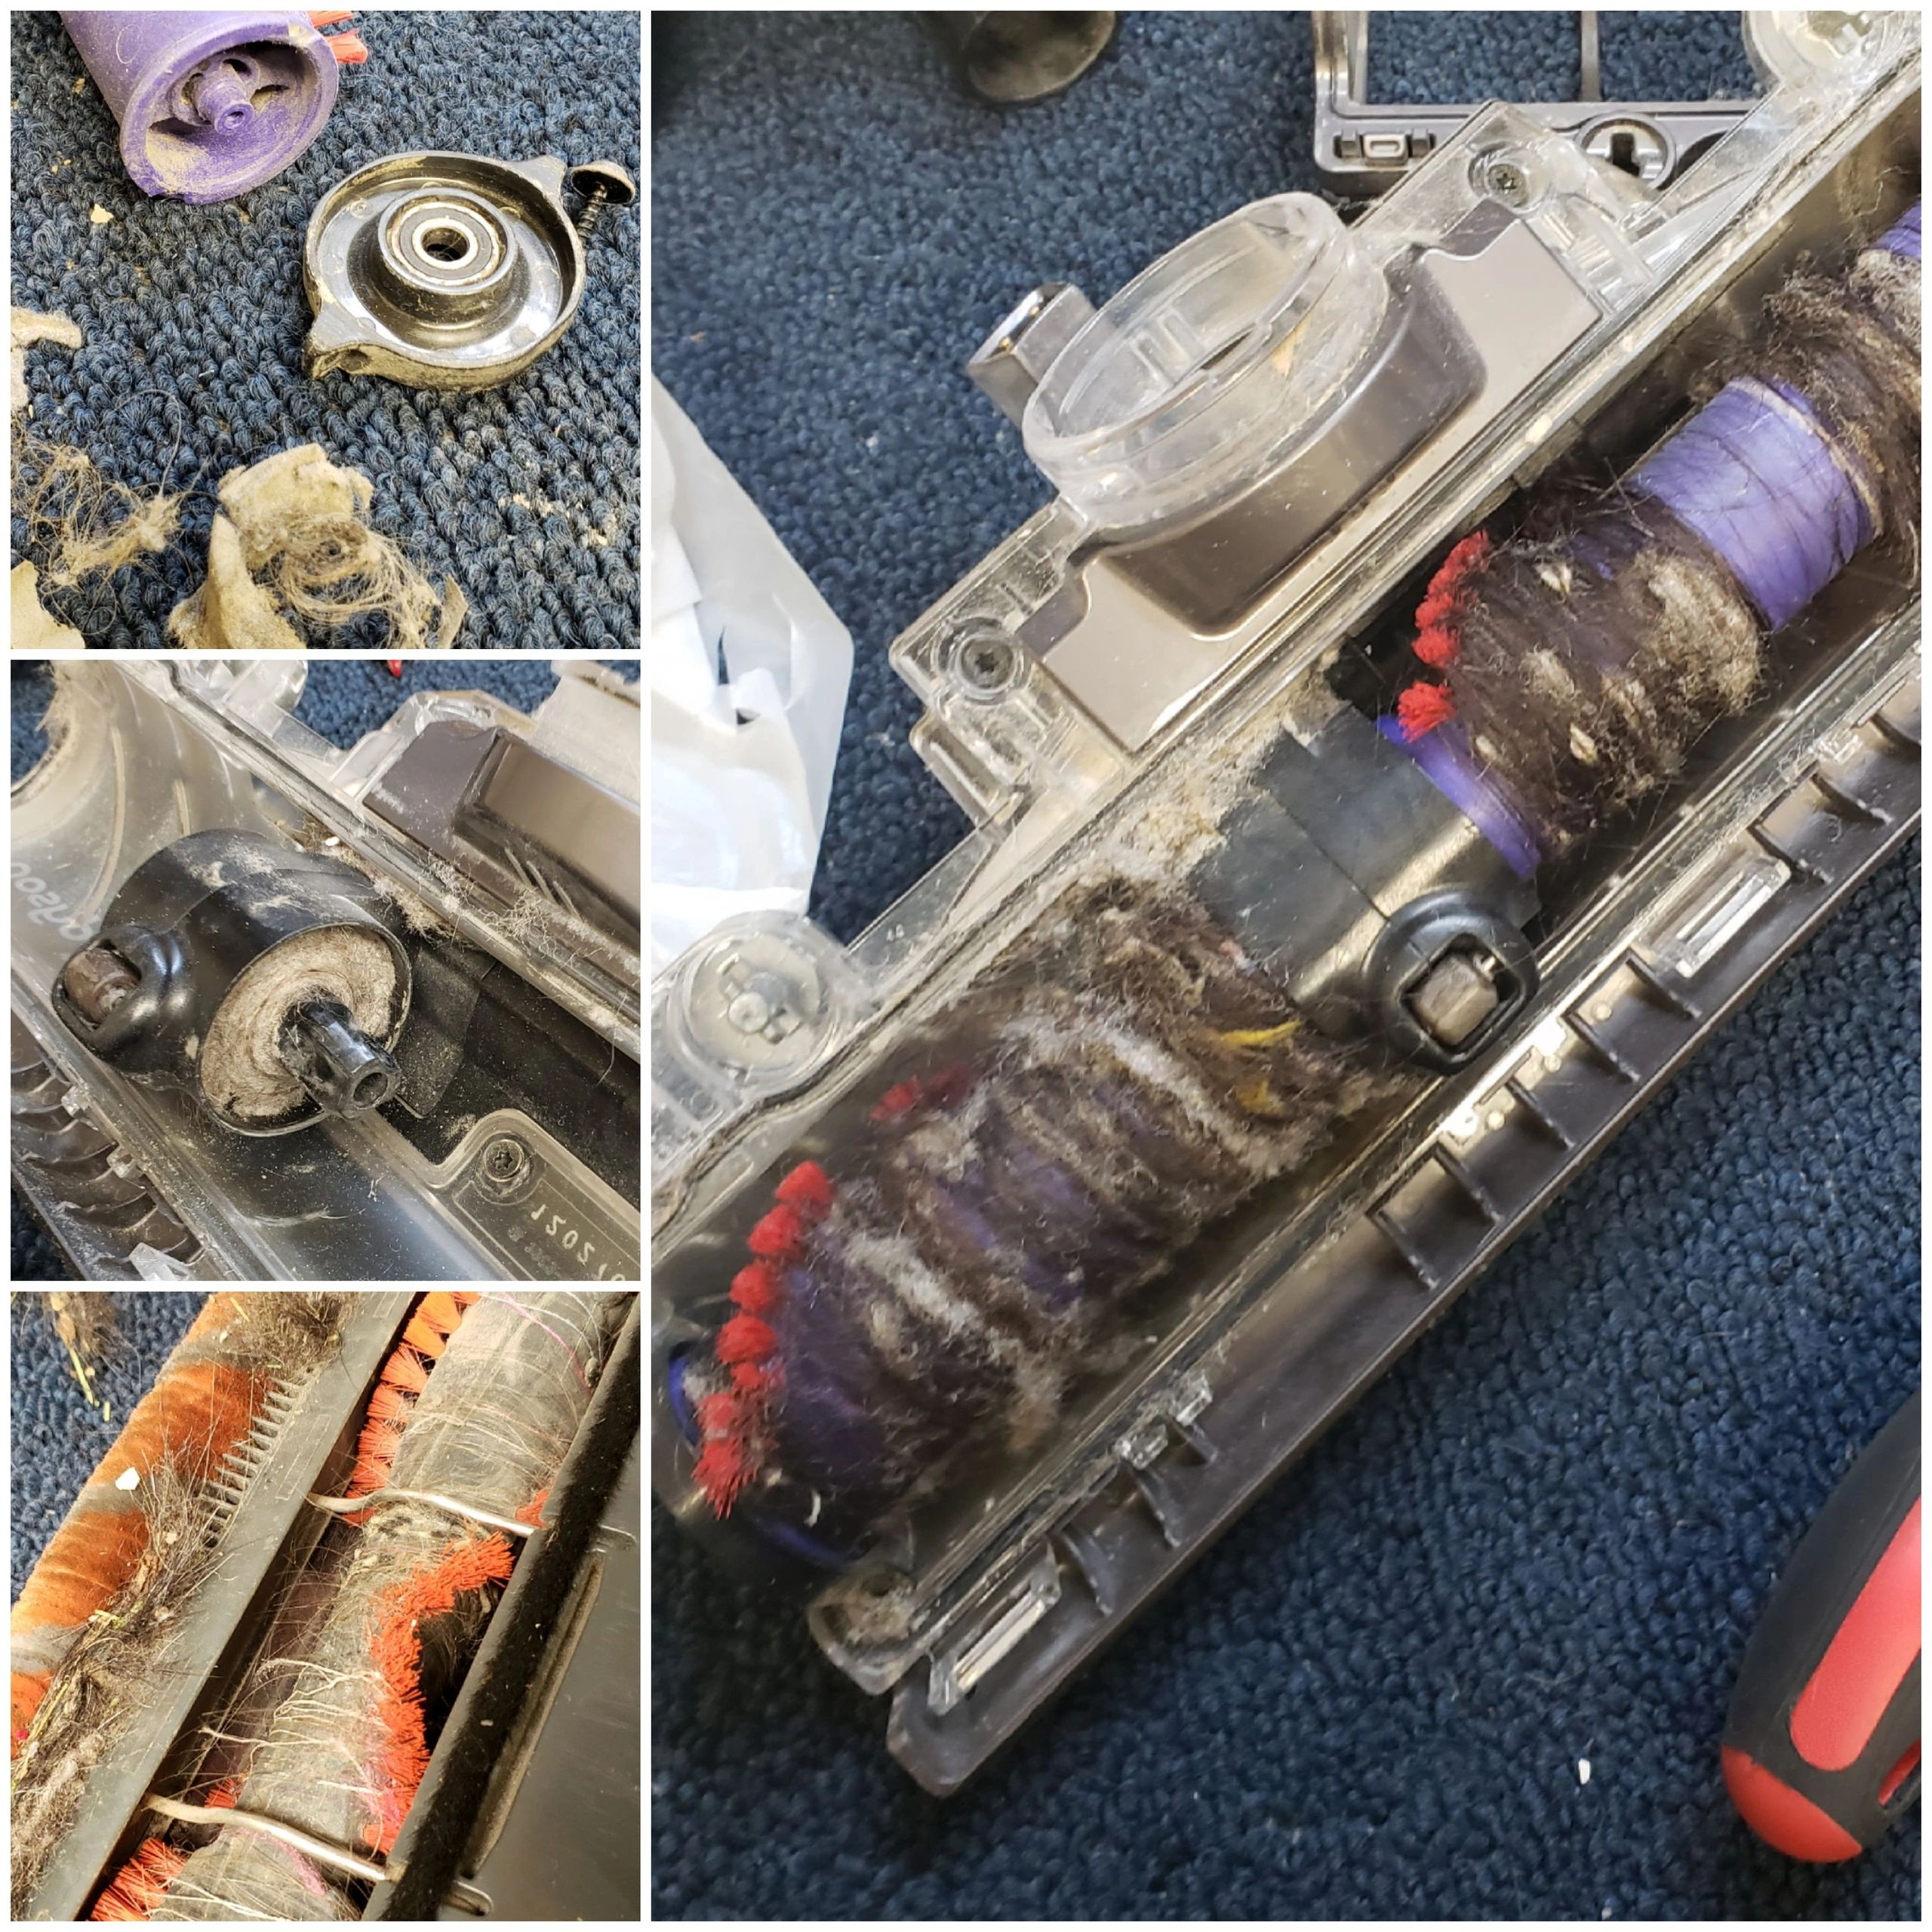 Bagless vacuum cleaners, are you doing the proper maintenance?